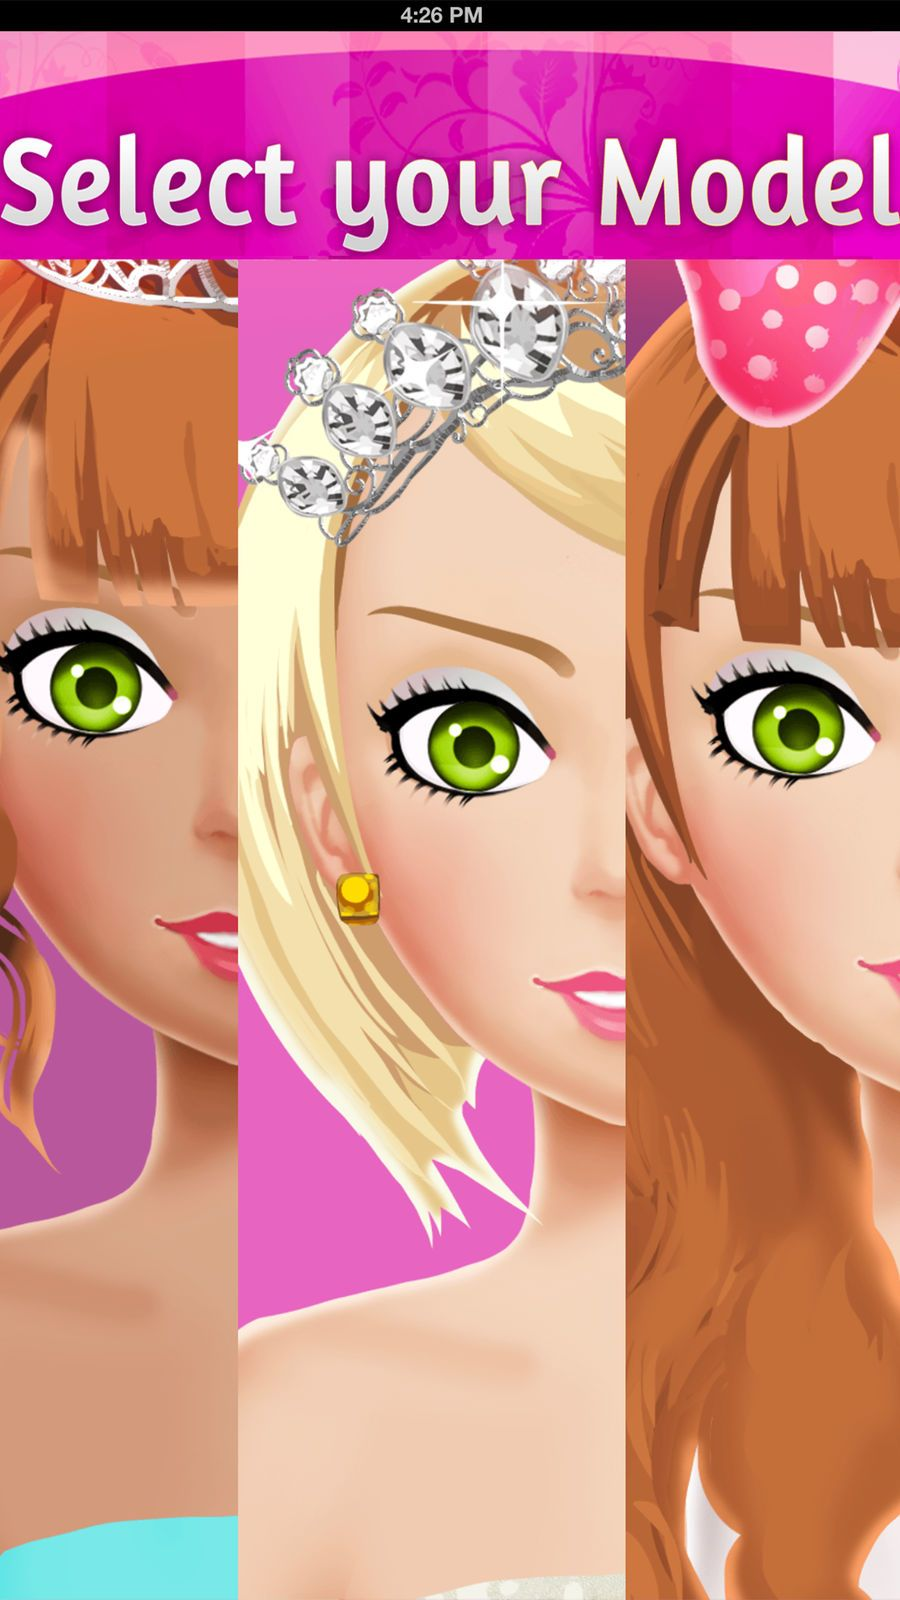 You Can Online Play Barbie Dress Up Colorful Swimsuits Game Free At Girlstopgames Co Uk In This Gir Barbie Dress Up Games Dress Up Games Online Girls Dress Up